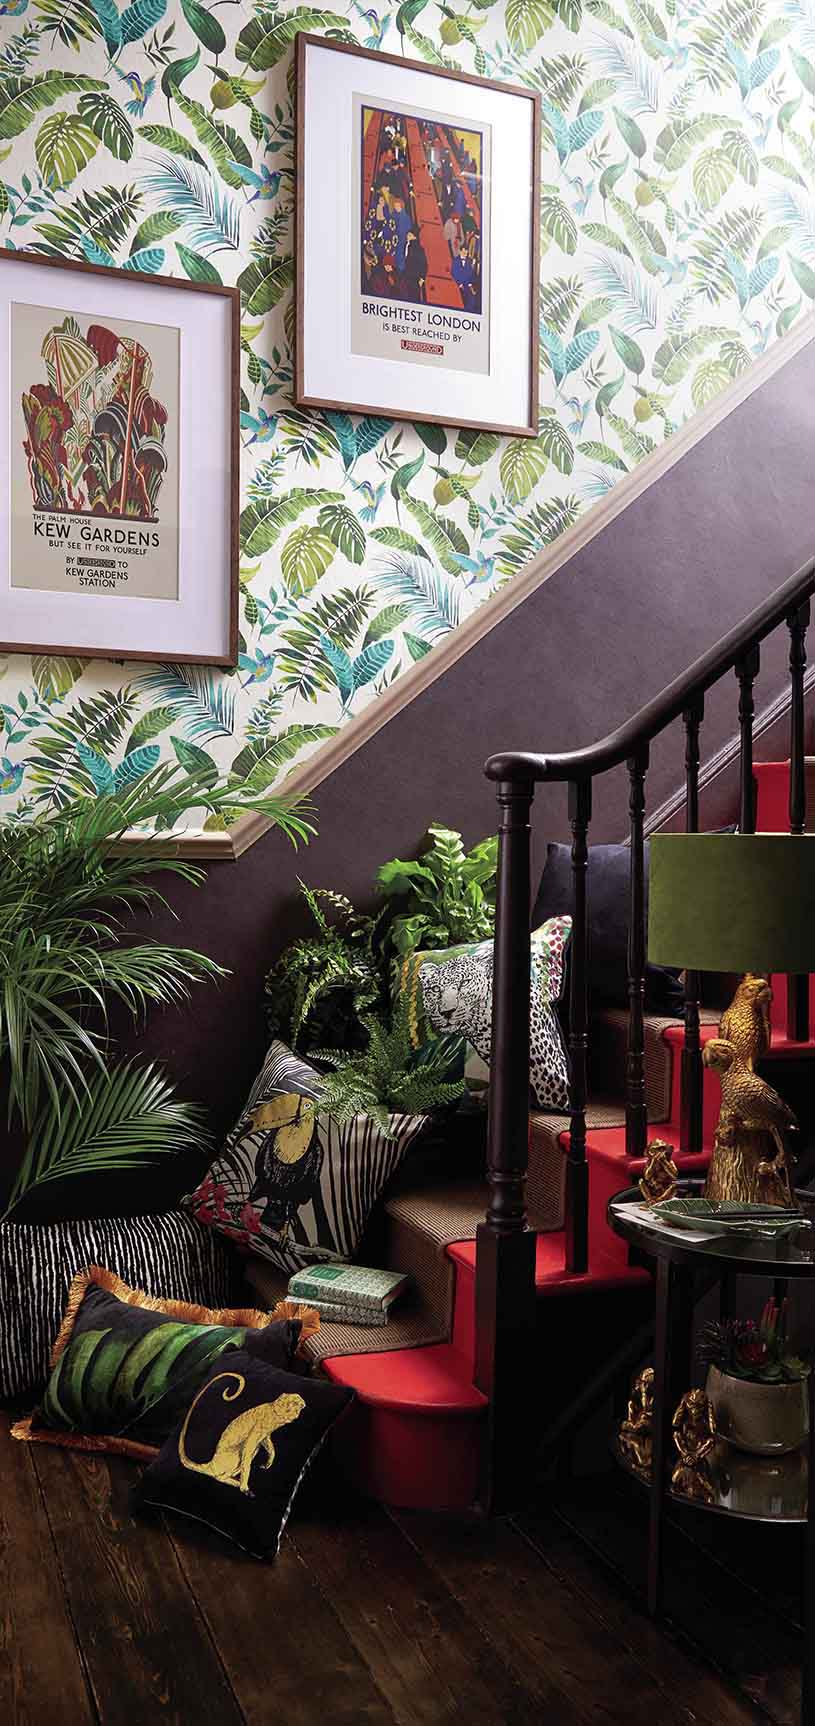 What a vibrant staircase thanks to a green foliage motif wallpaper, a number of plants and two image prints. Image by Dunelm.